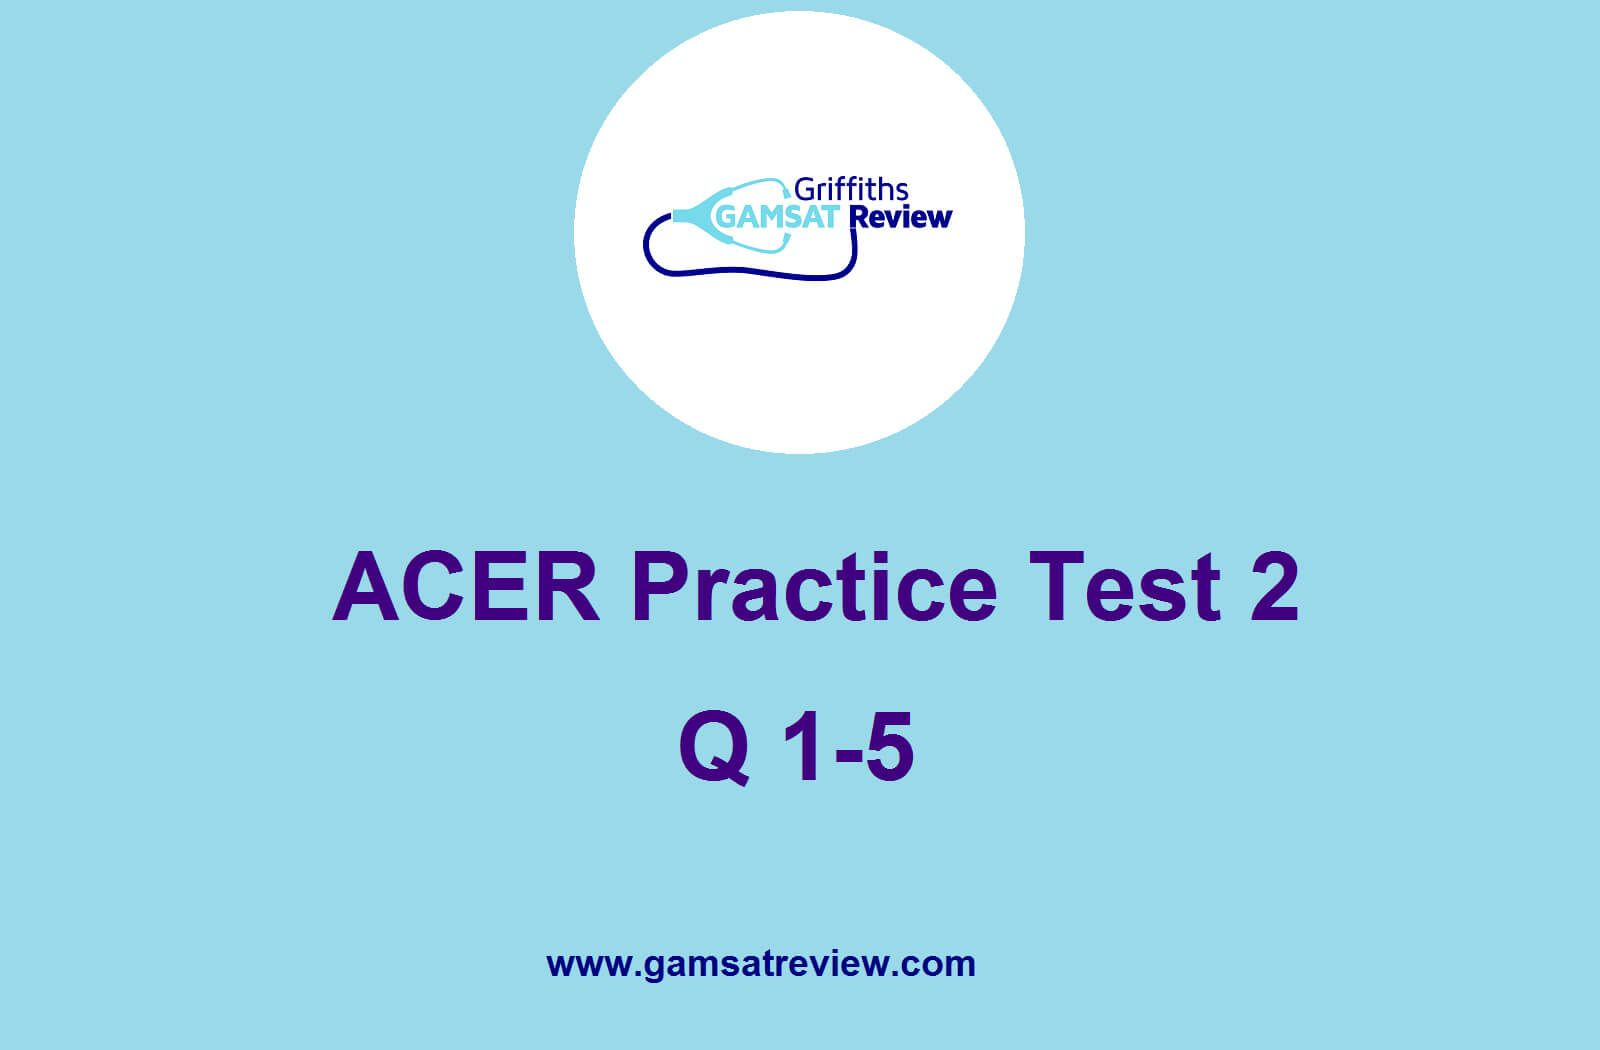 Gamsat Practice Test 2 Solutions